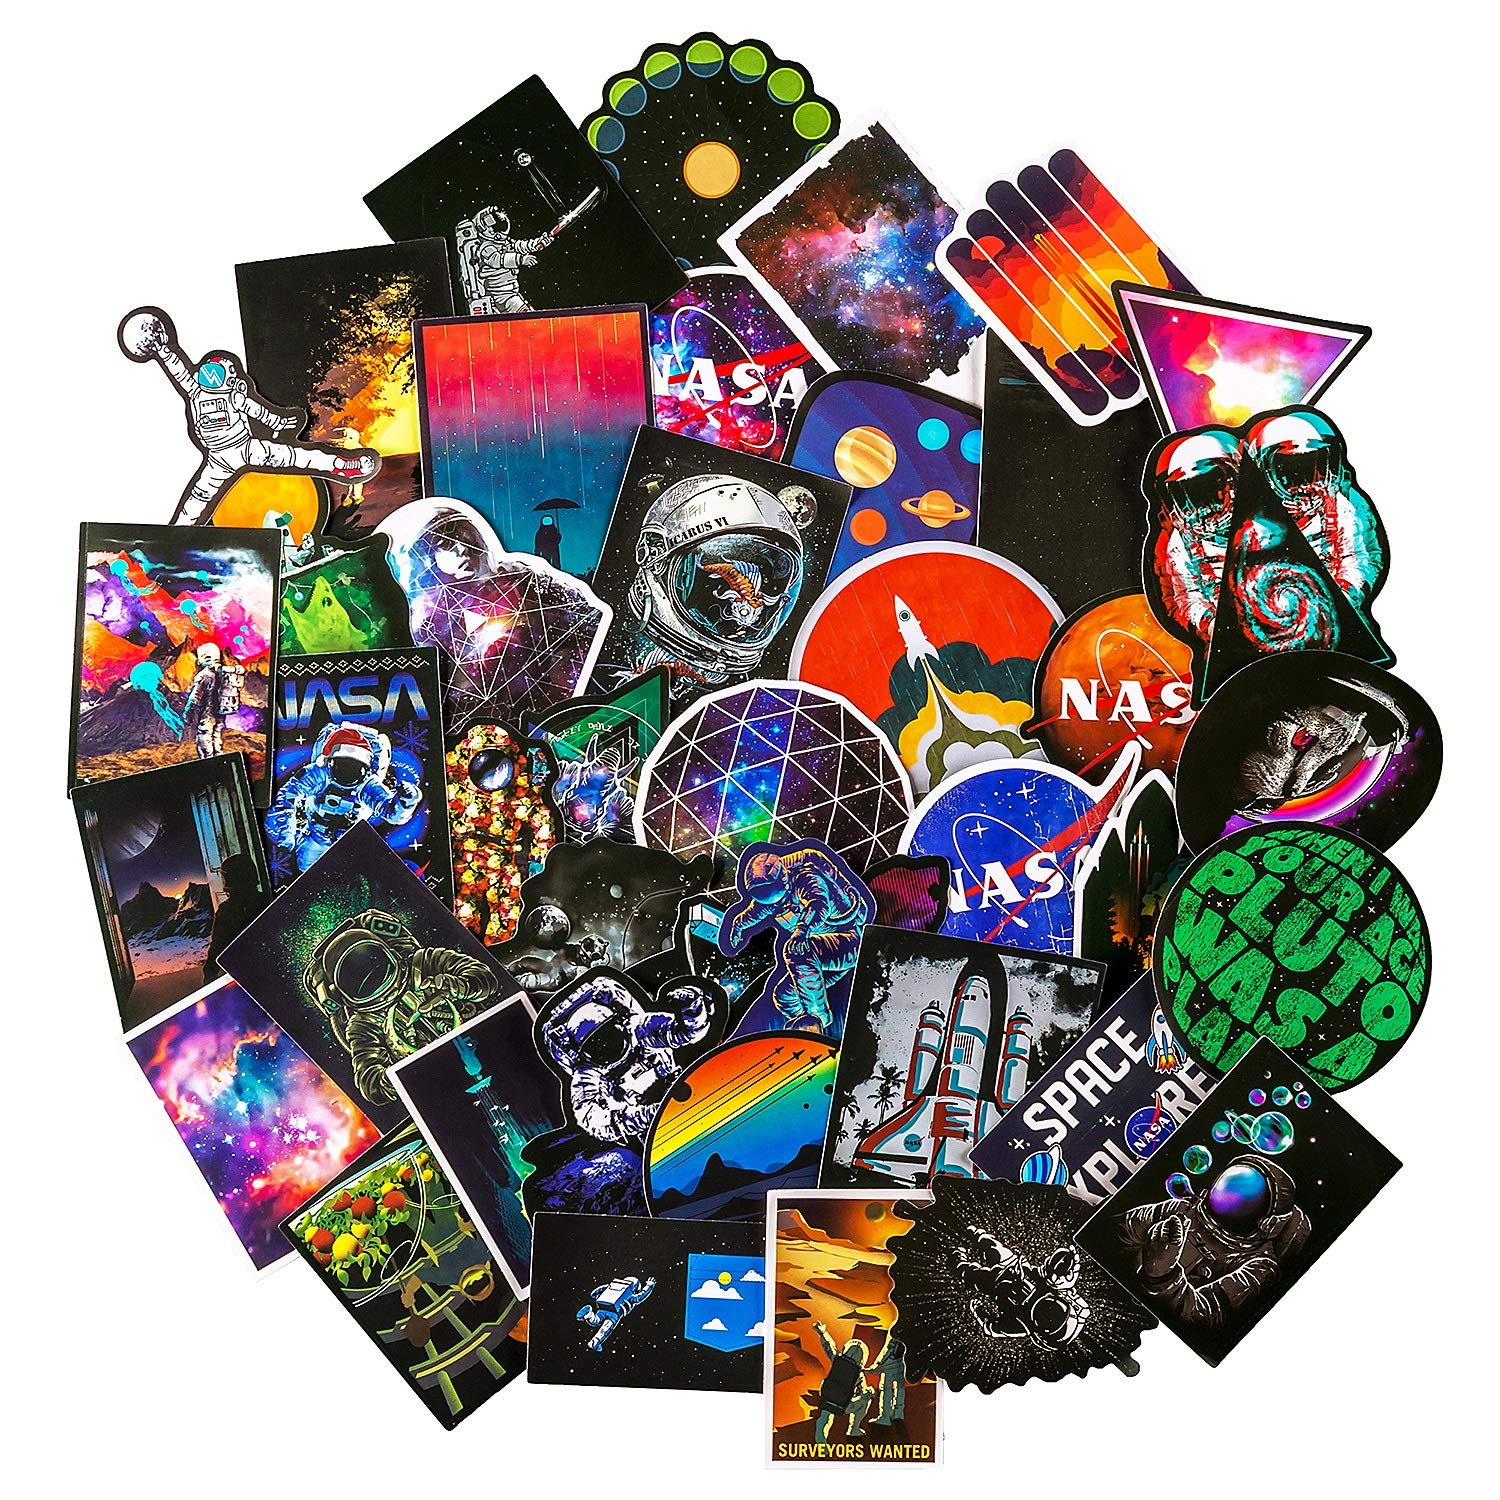 NASA Stickers for Laptop [100PCS], Space Explorer Galaxy Vinyl Decals for Water Bottle Hydro Flask MacBook Car Bike Bumper Skateboard Luggage, Spaceman Spacecraft Universe Planet Logo Graffiti Sticker